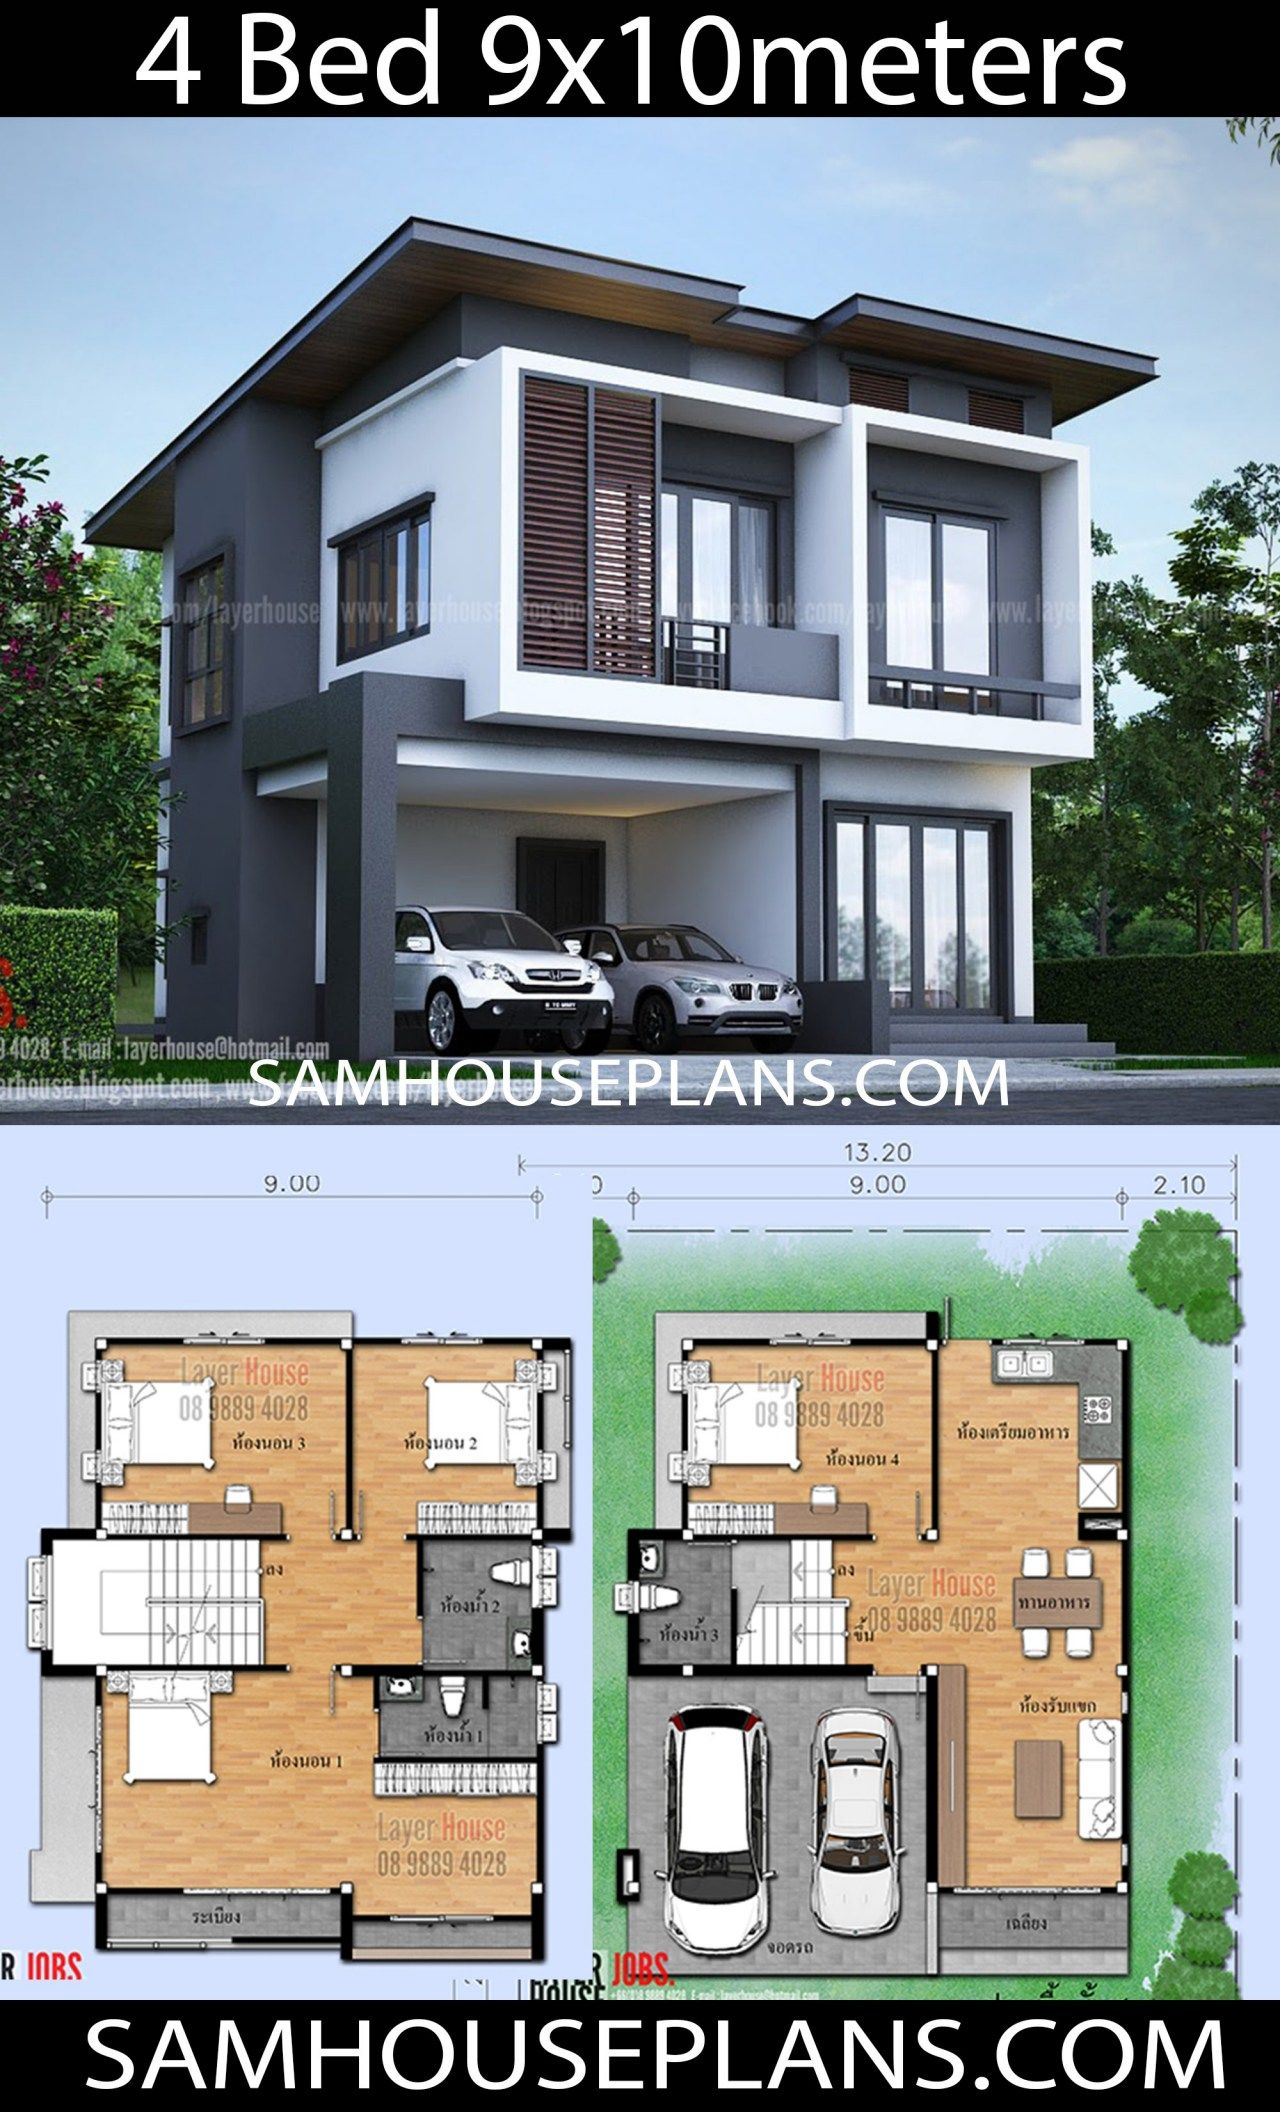 House Plans Idea 9x10m With 4 Bedrooms Sam House Plans Beautiful House Plans Beach House Plans Modern Style House Plans